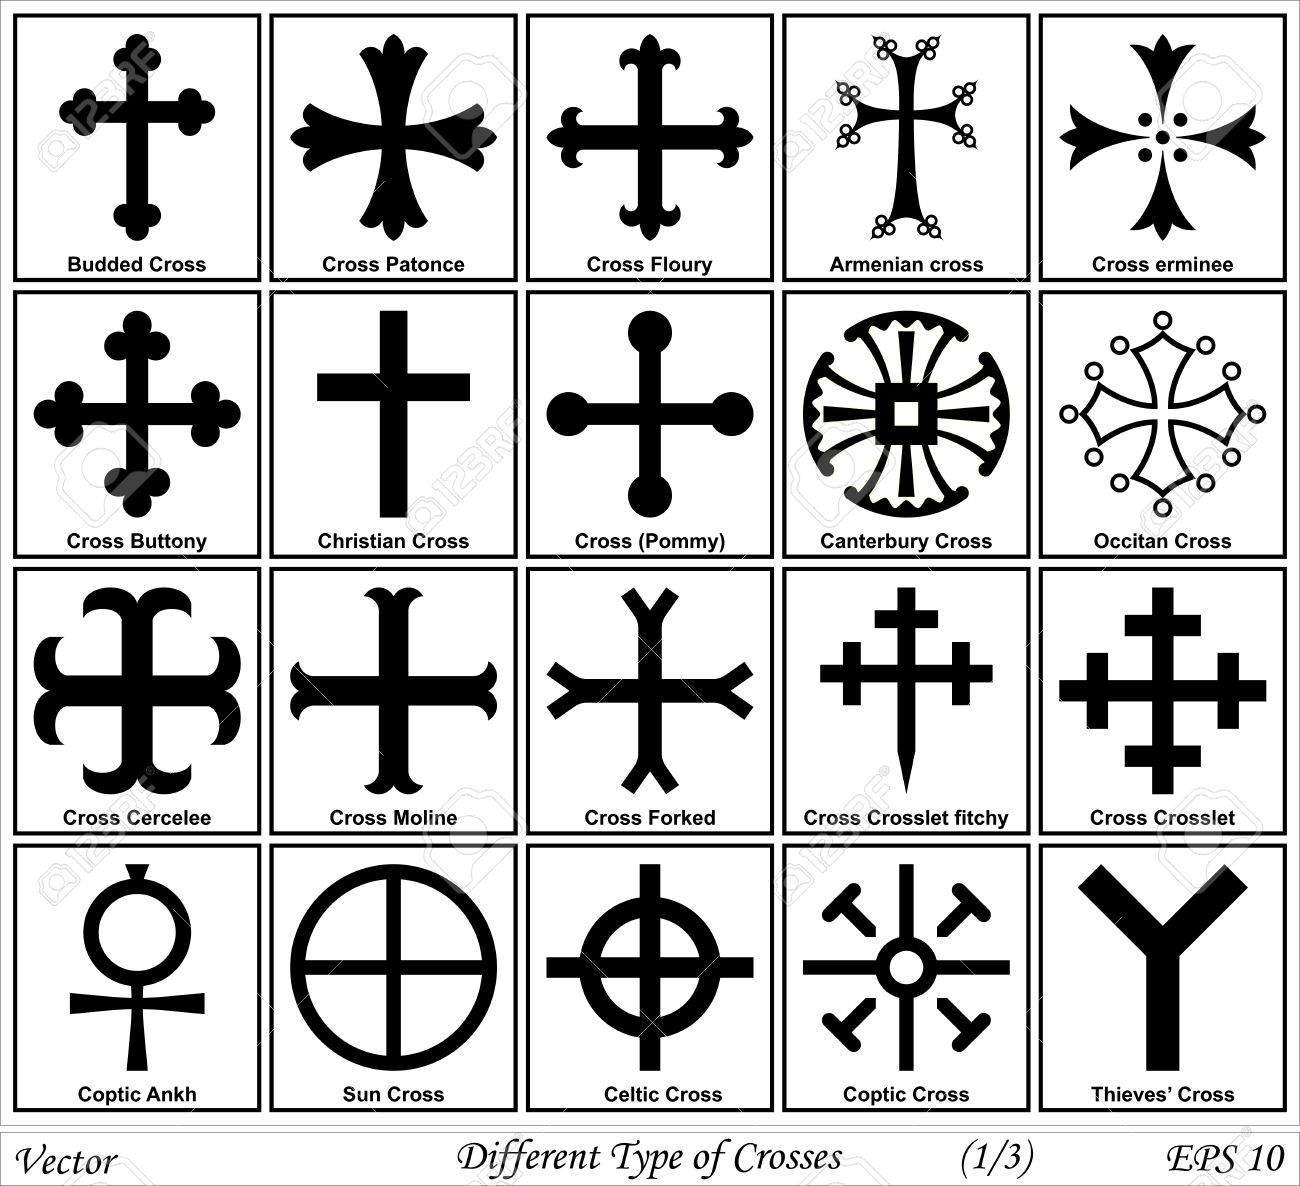 Different types of crosses and their meanings royalty free different types of crosses and their meanings stock vector 26945601 biocorpaavc Images